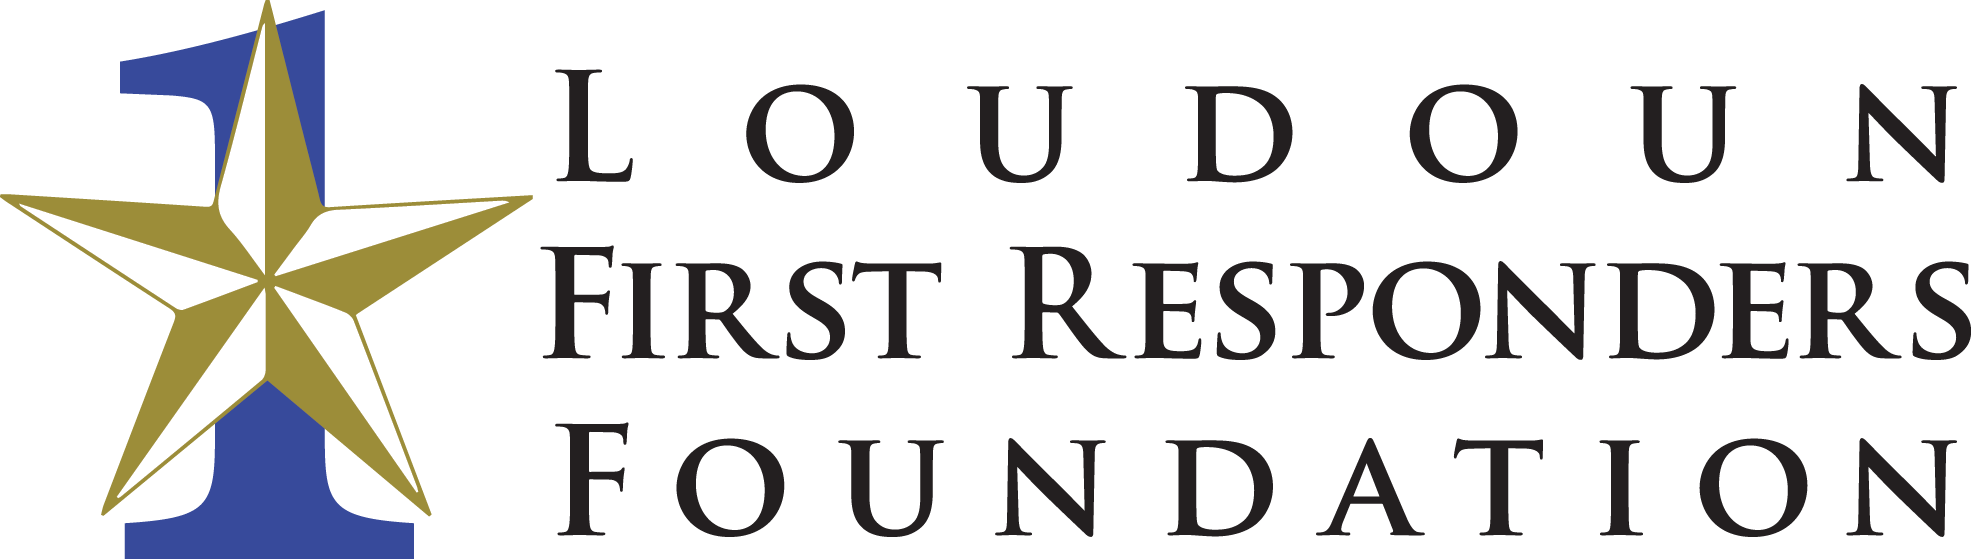 Loudoun First Responders Foundation